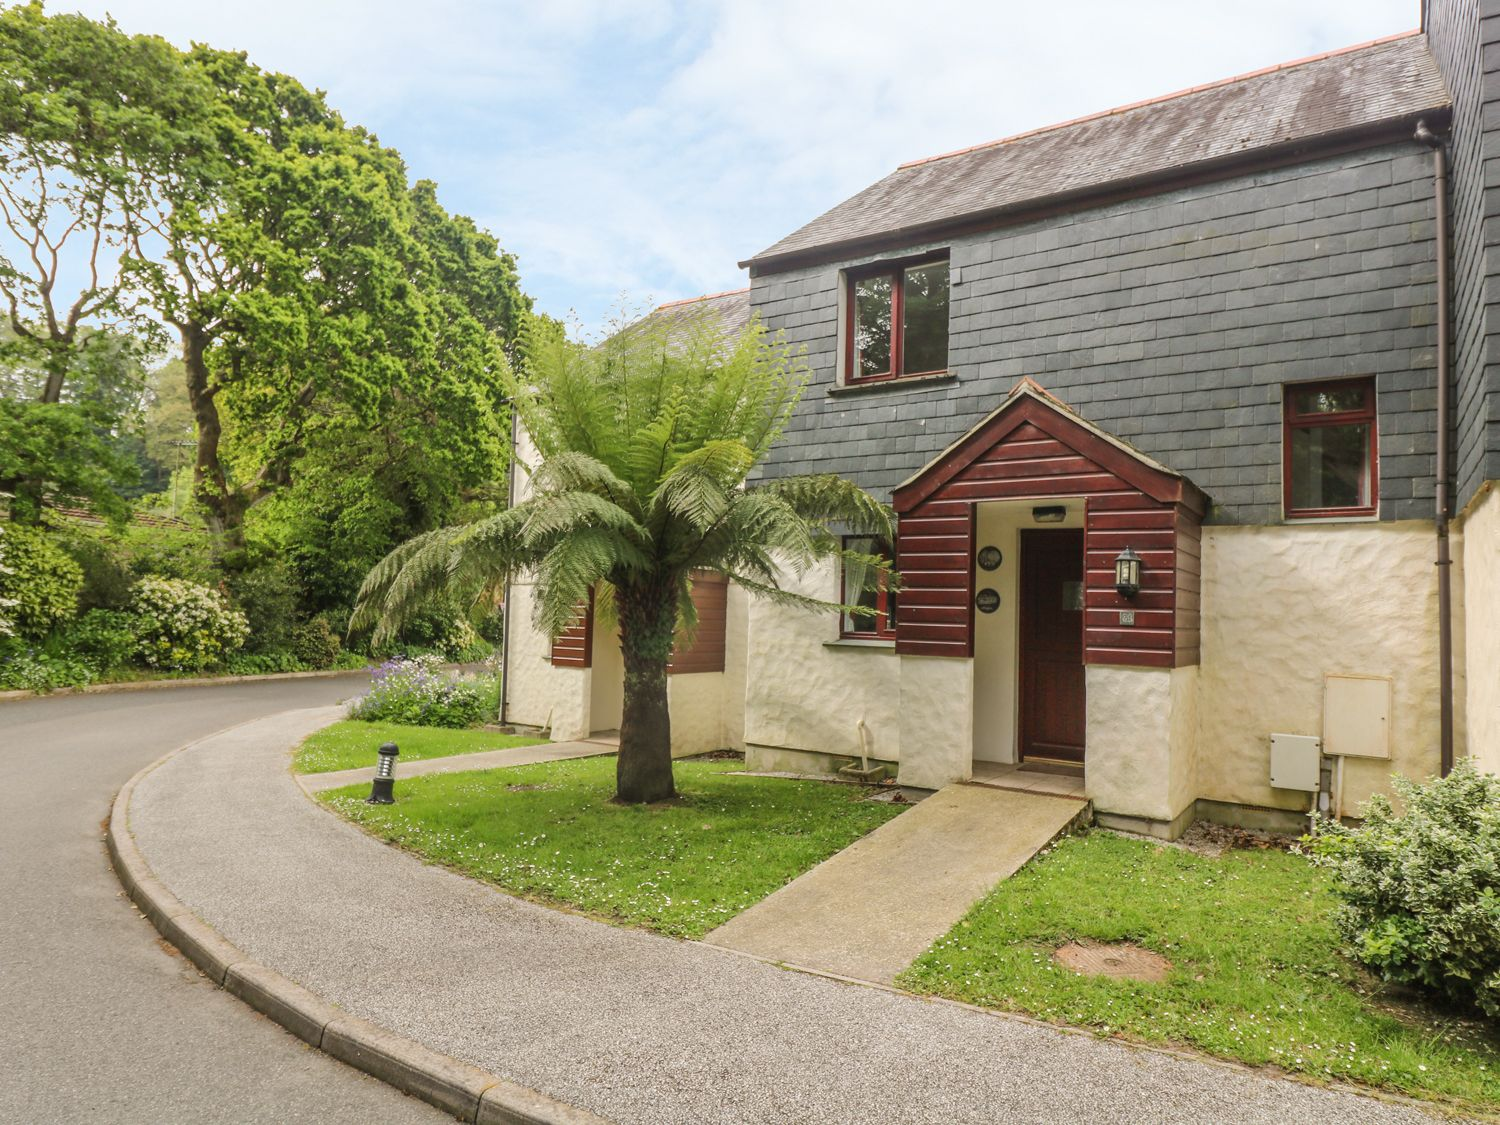 Cuckoo's Cottage, Falmouth, Cornwall